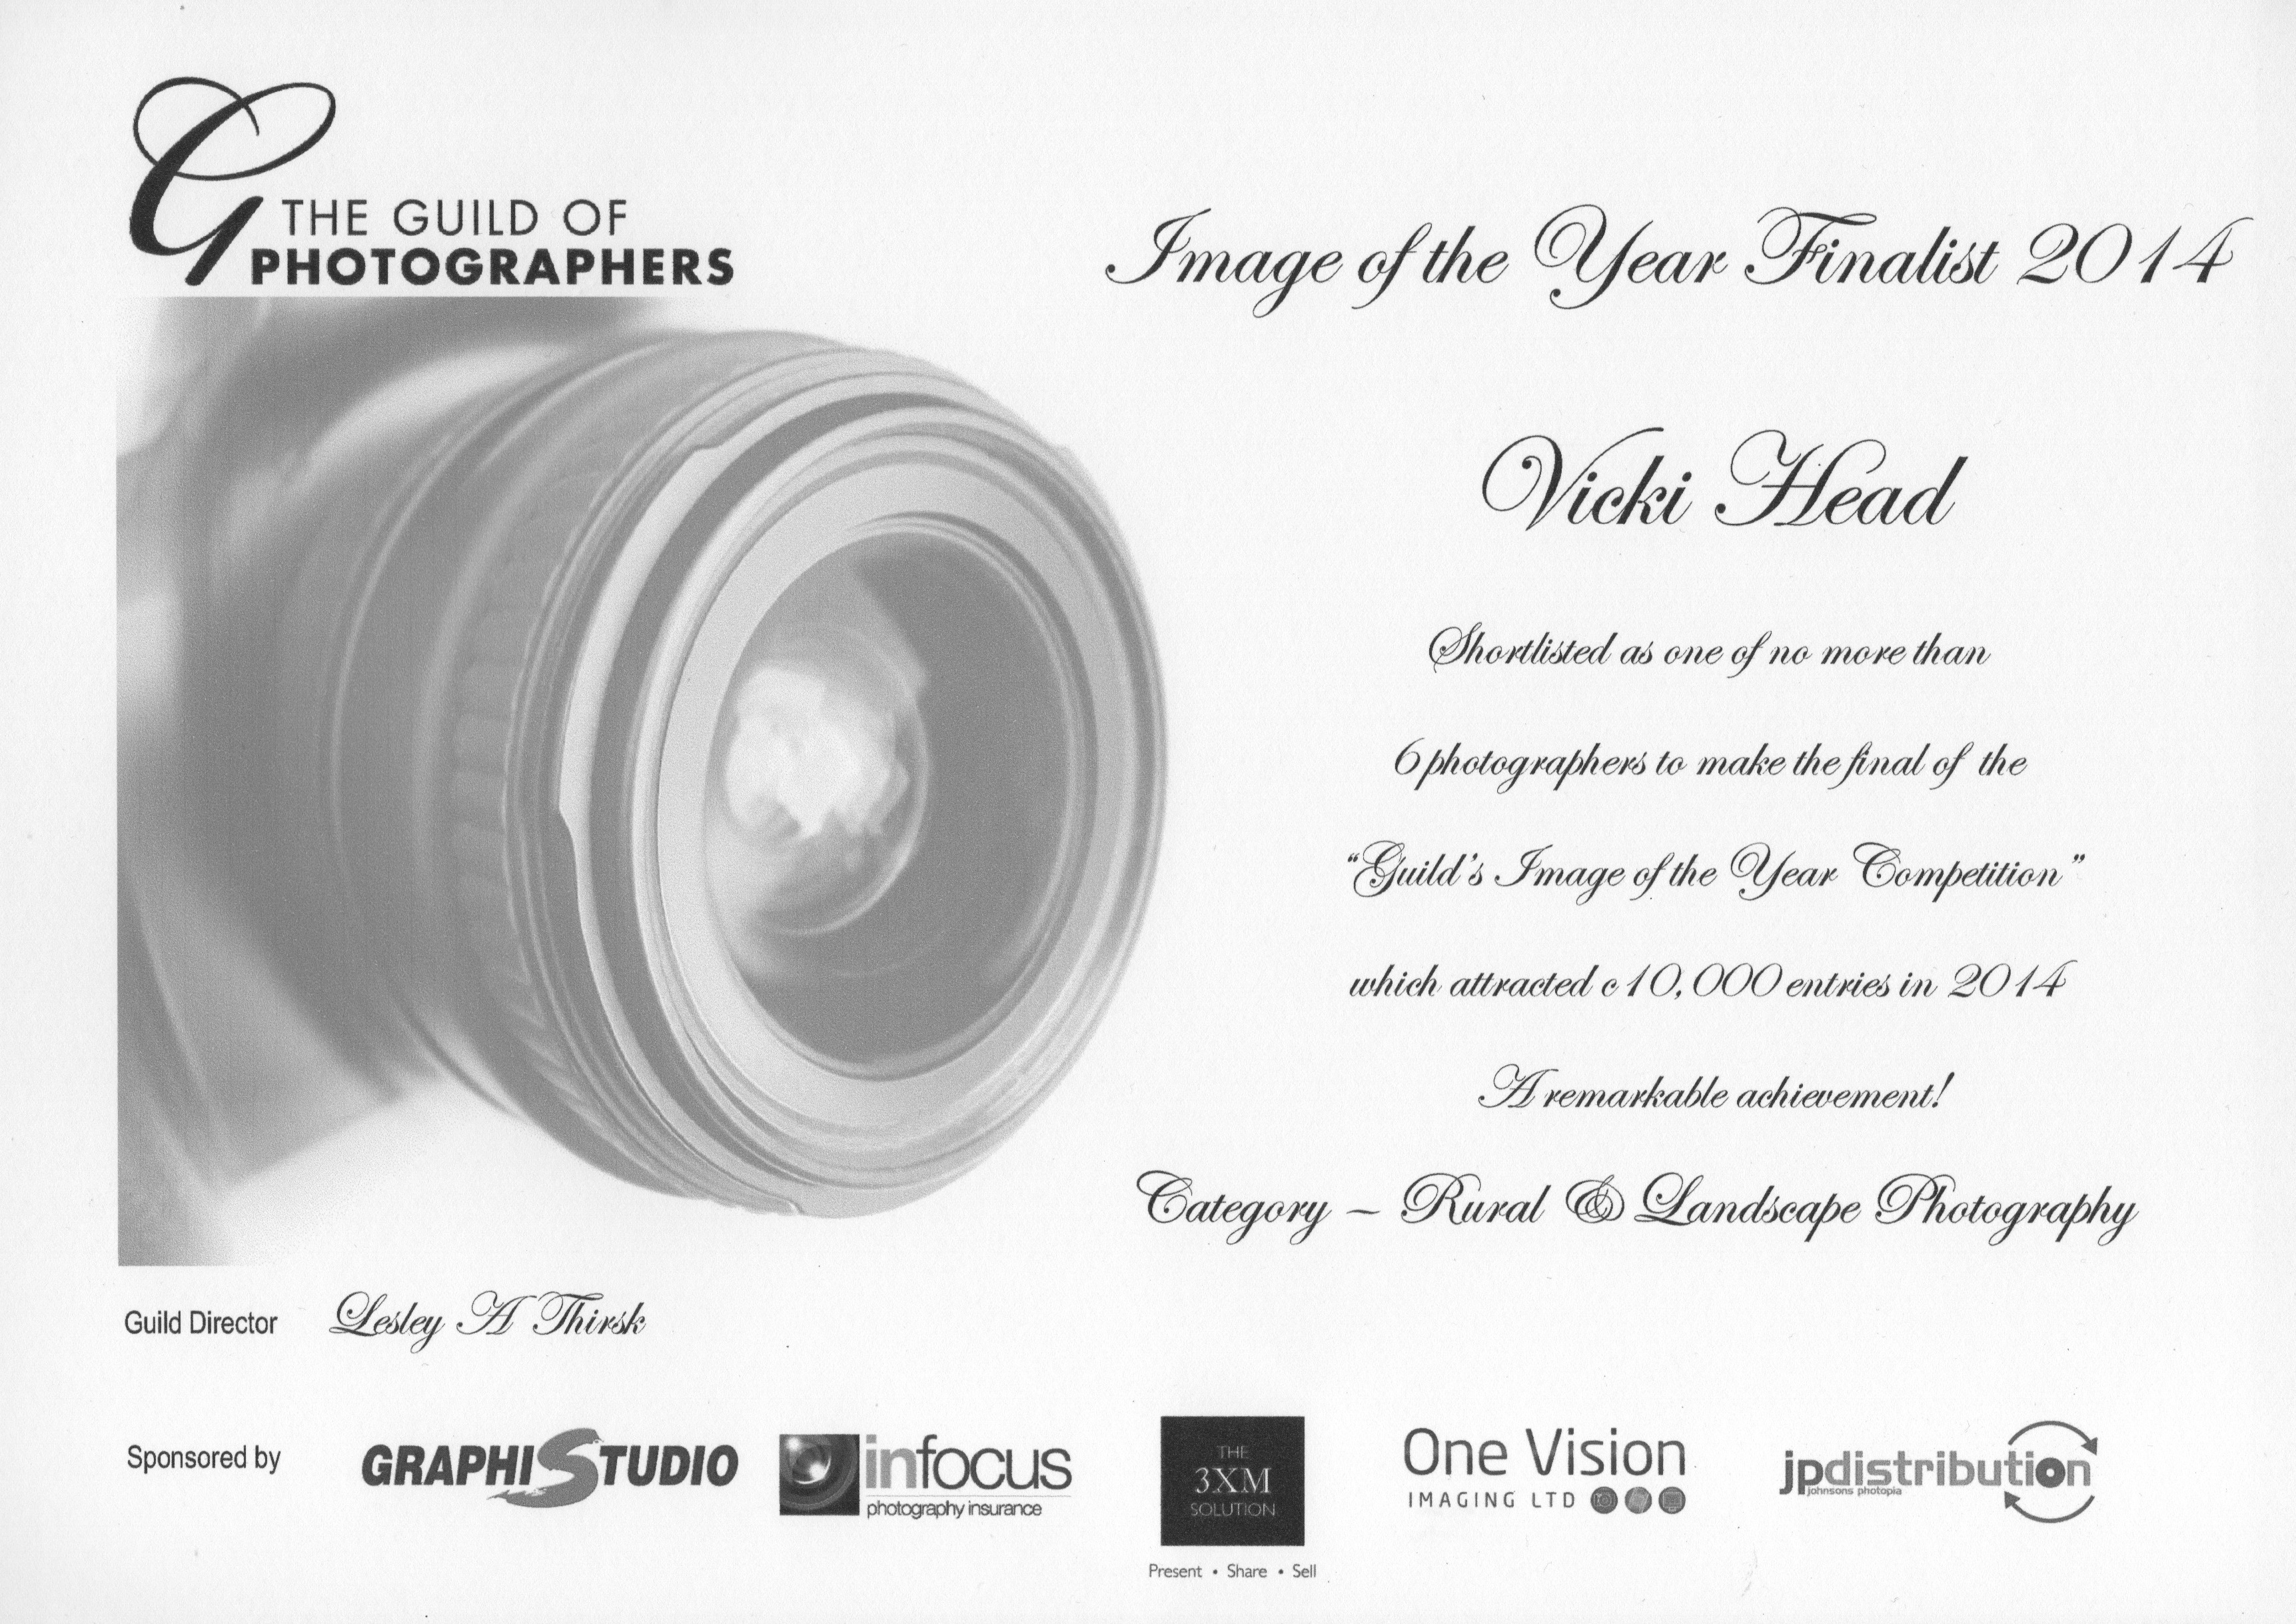 Vicki Head Guild award. Image of the year